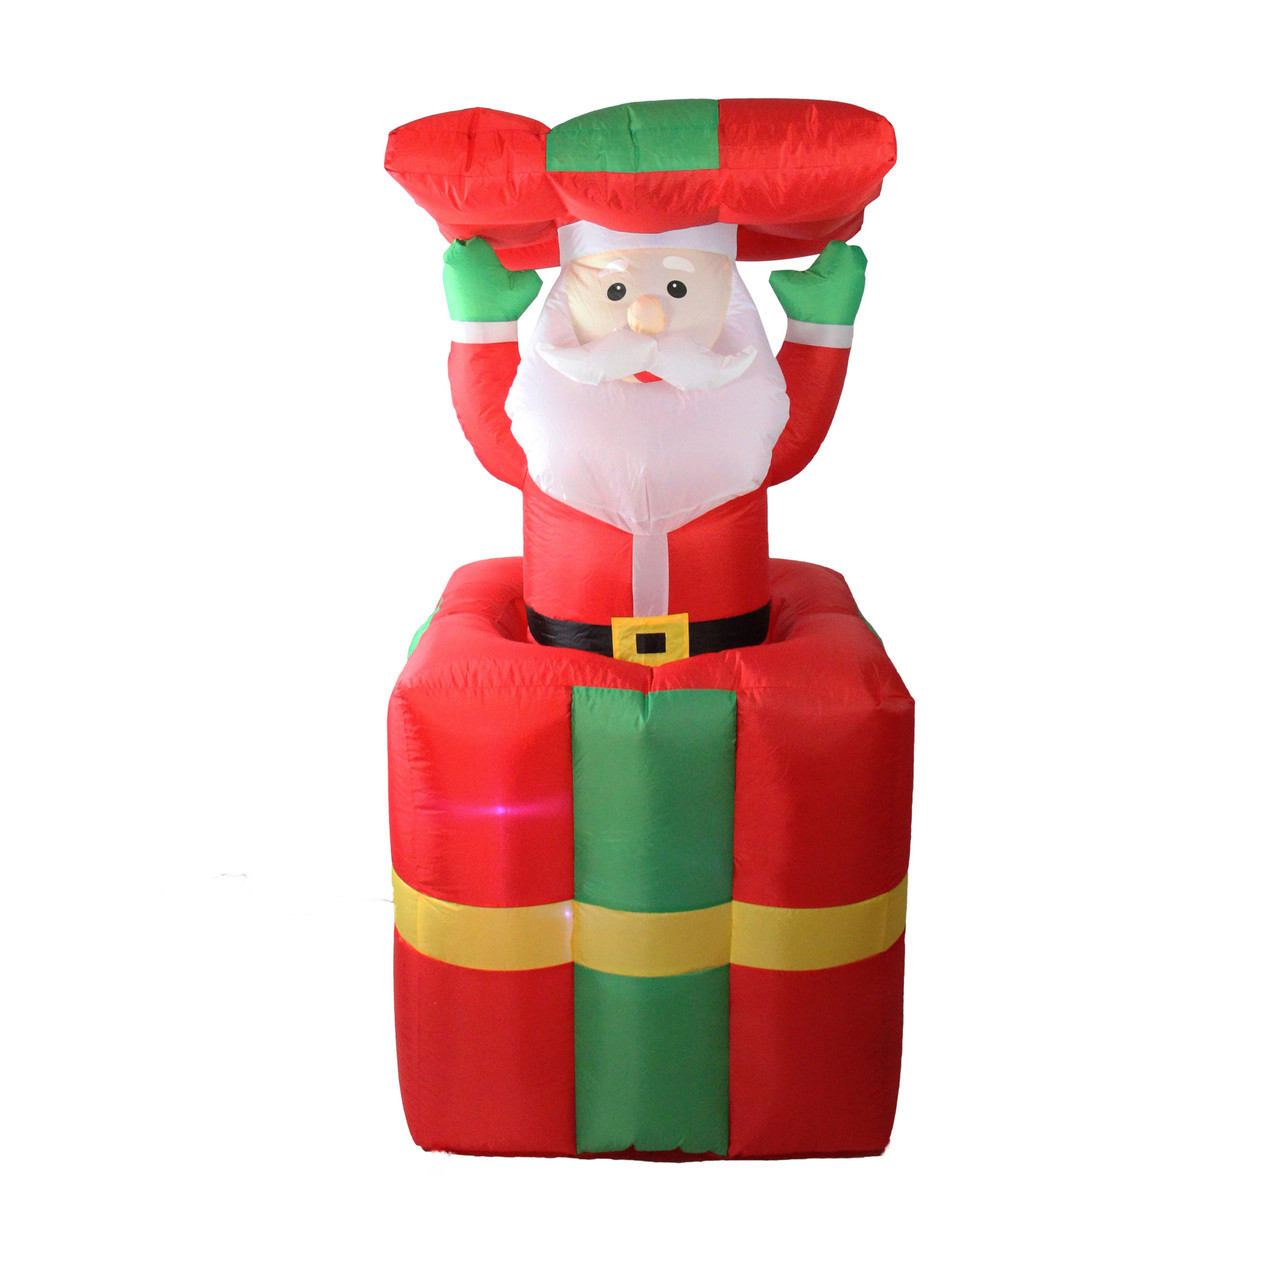 Superbe 5u0027 Lighted Inflatable Pop Up Santa Claus In Gift Box Christmas Outdoor  Decoration   32634955